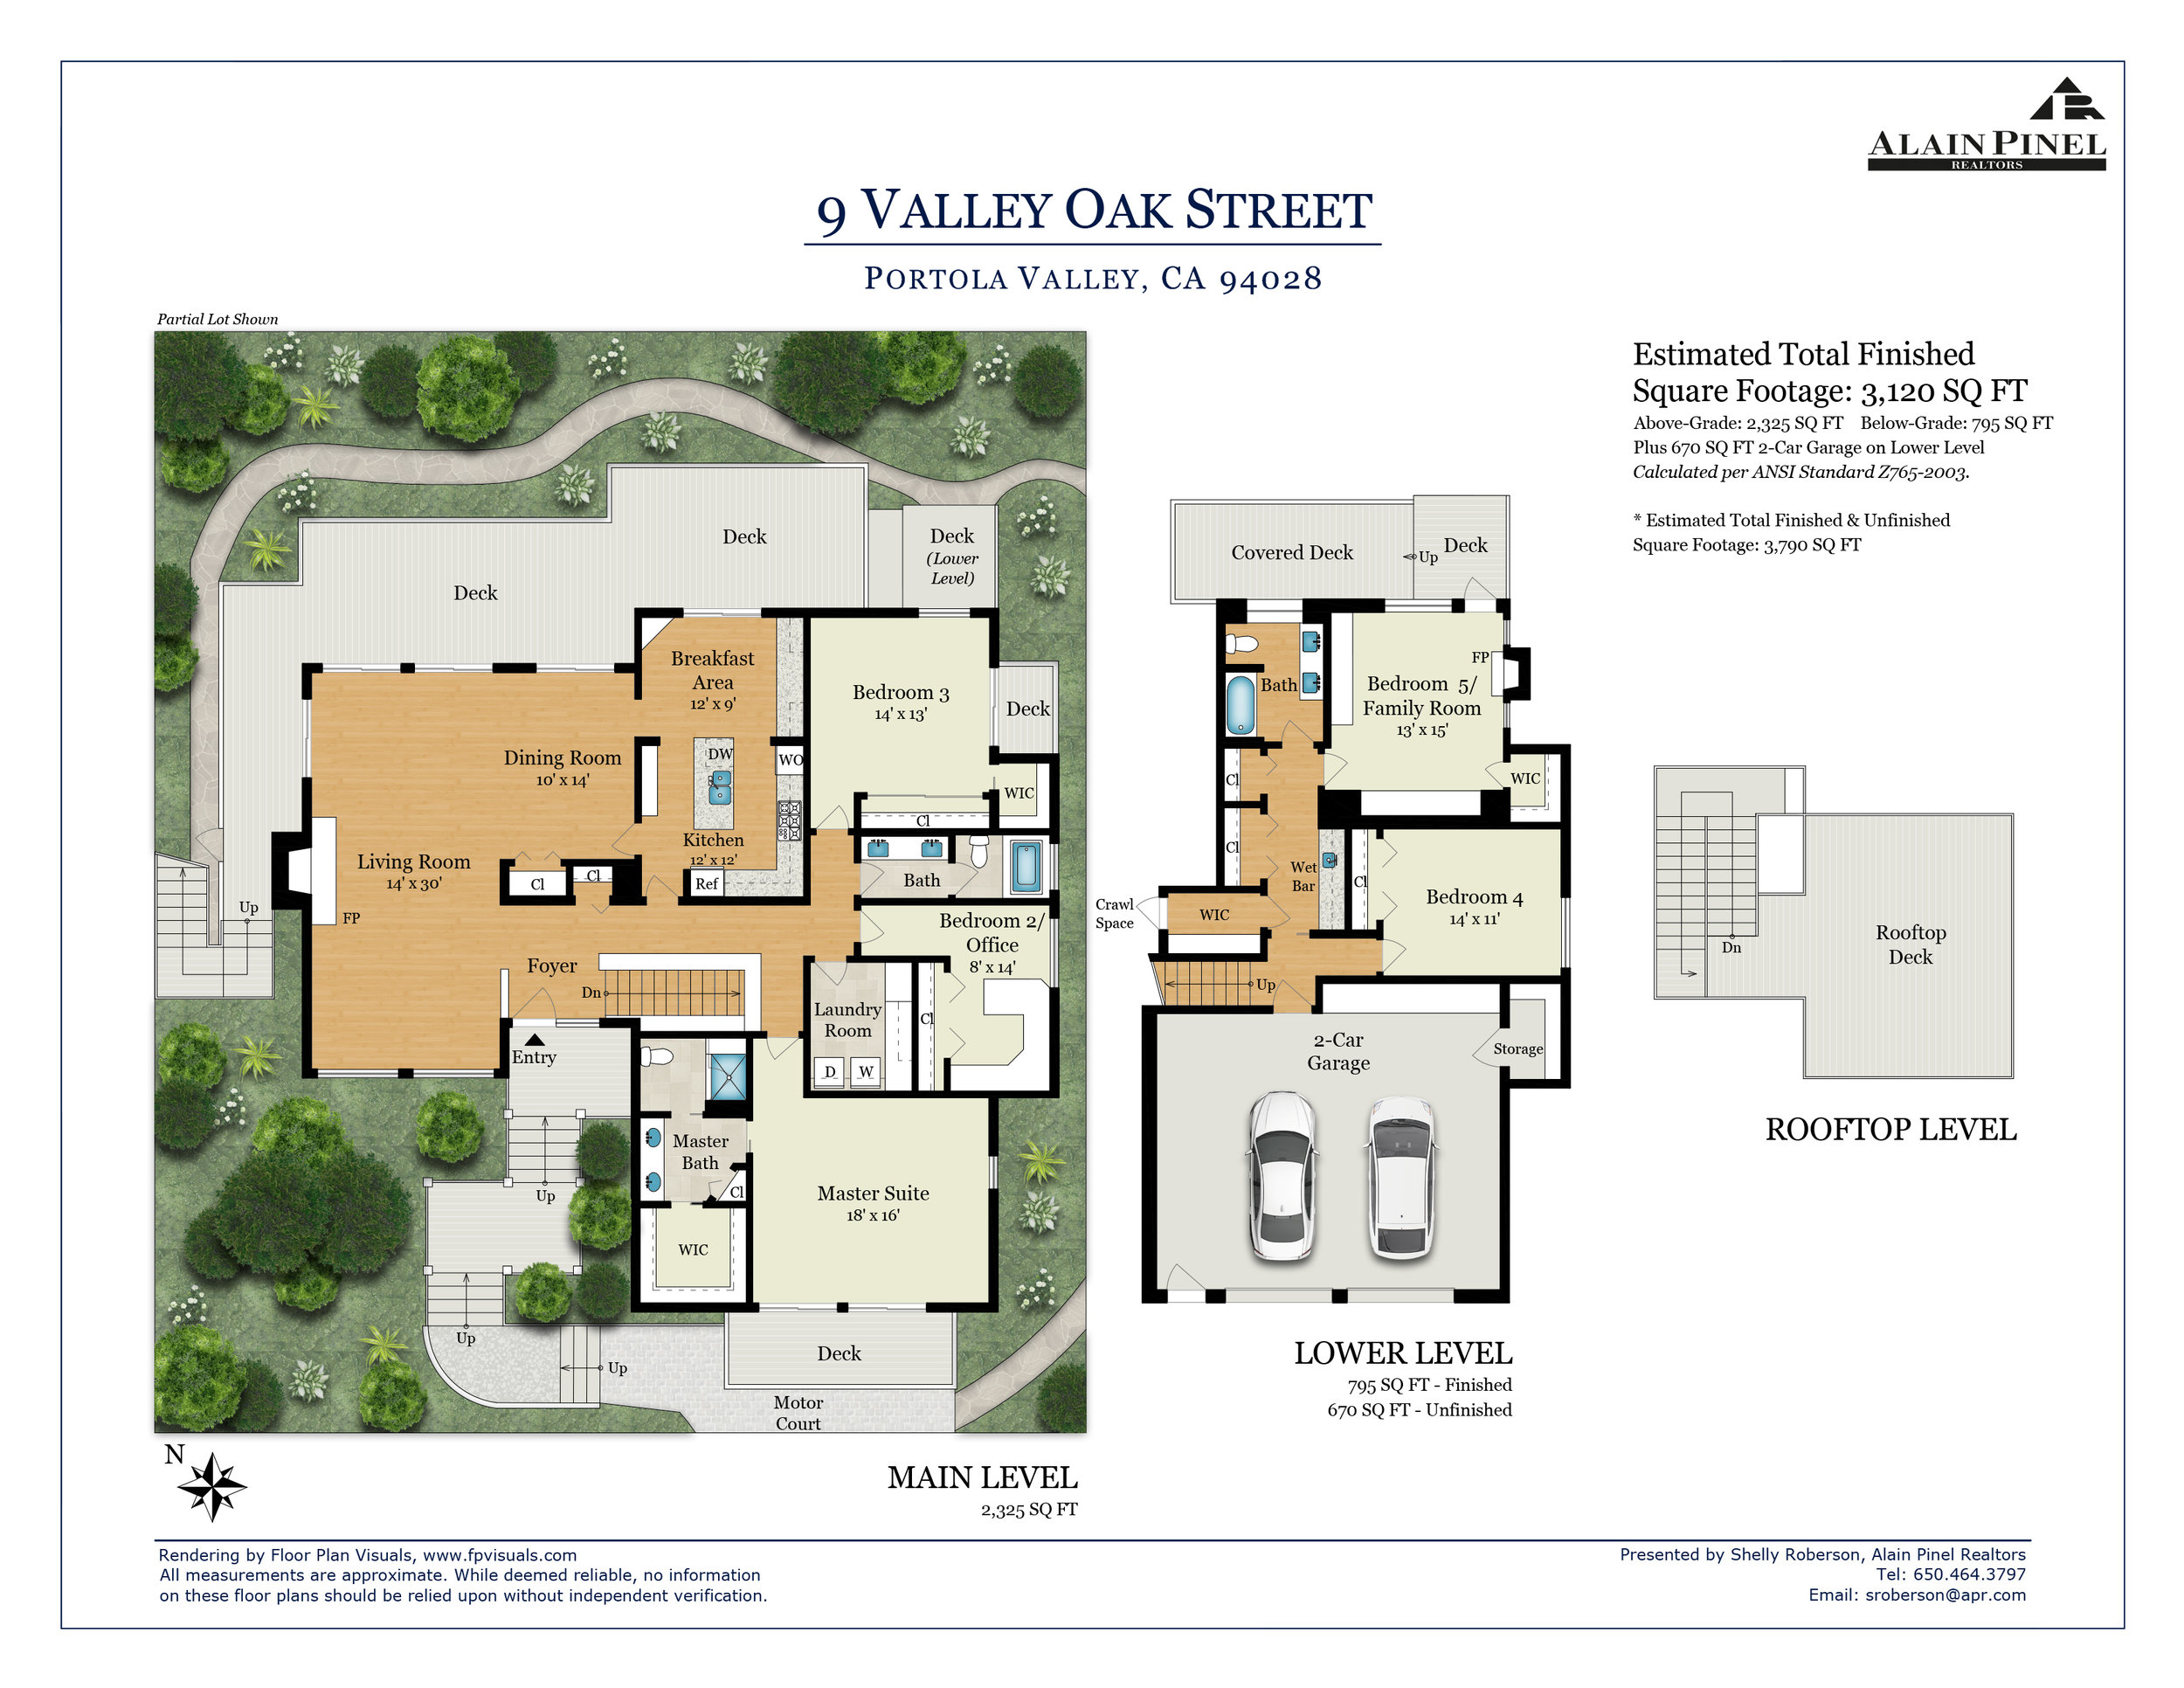 SR-9ValleyOakSt-FloorPlan-Print-R1.jpg